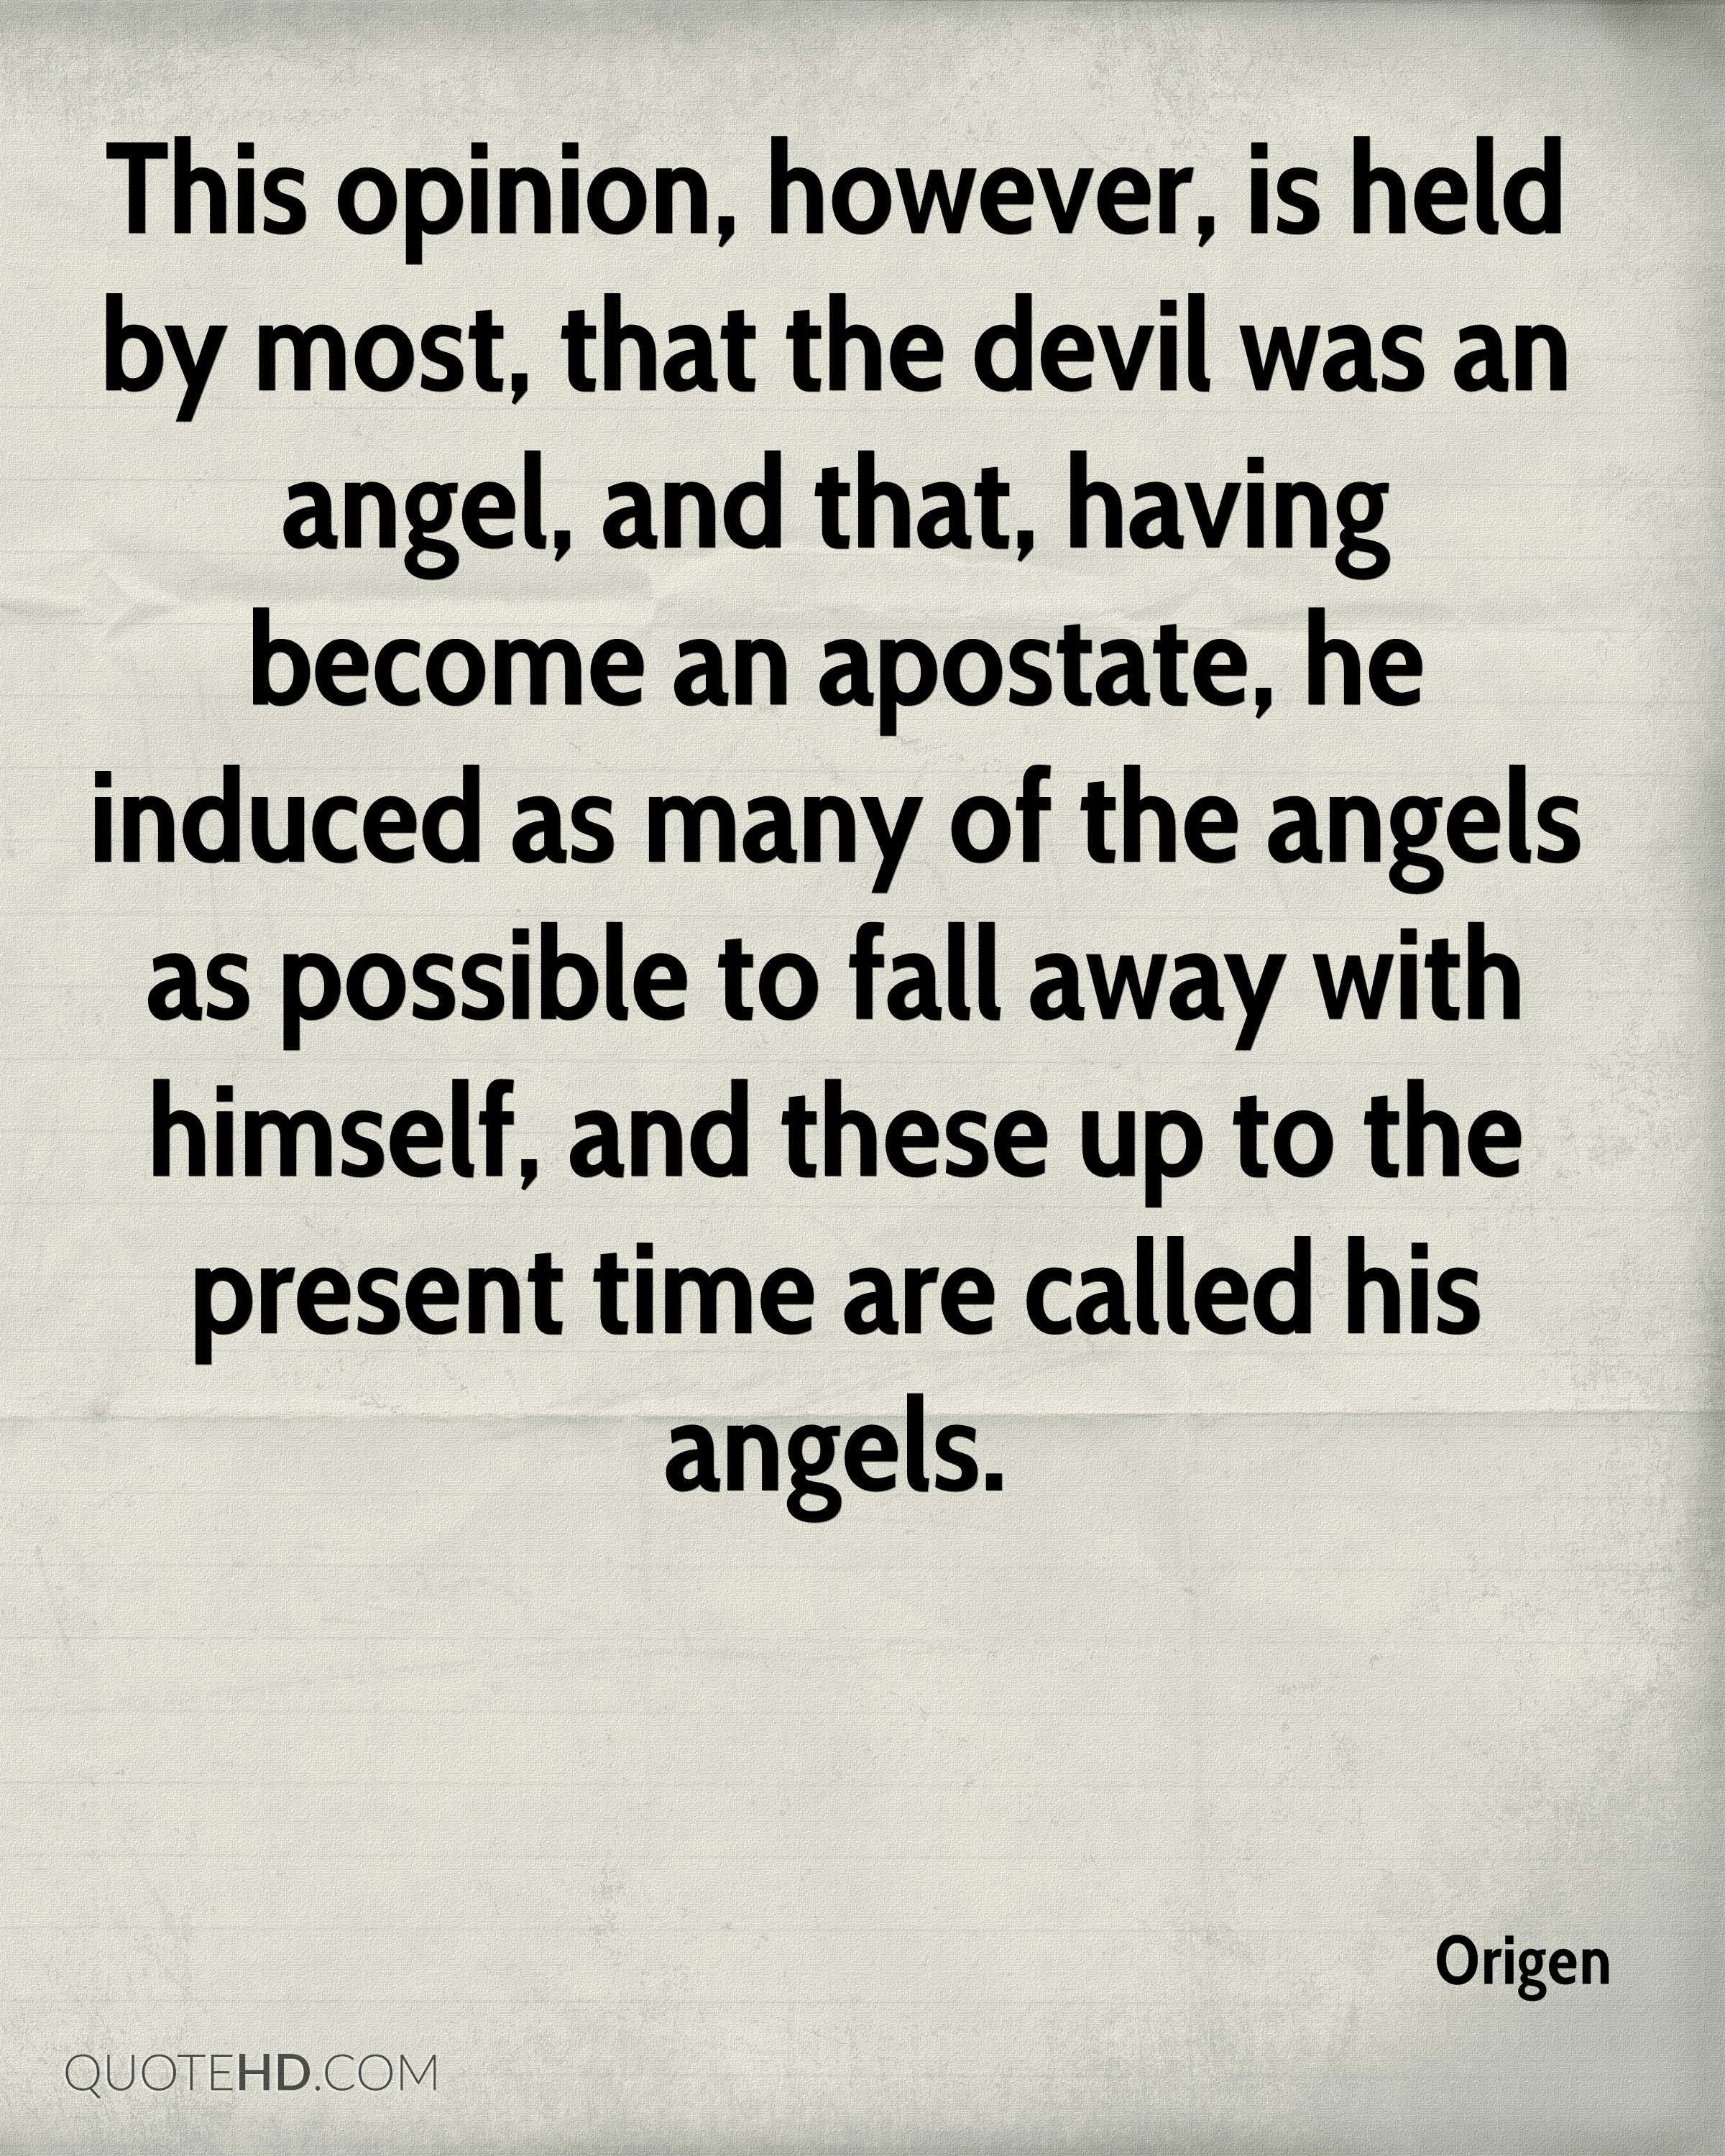 This opinion, however, is held by most, that the devil was an angel, and that, having become an apostate, he induced as many of the angels as possible to fall away with himself, and these up to the present time are called his angels.